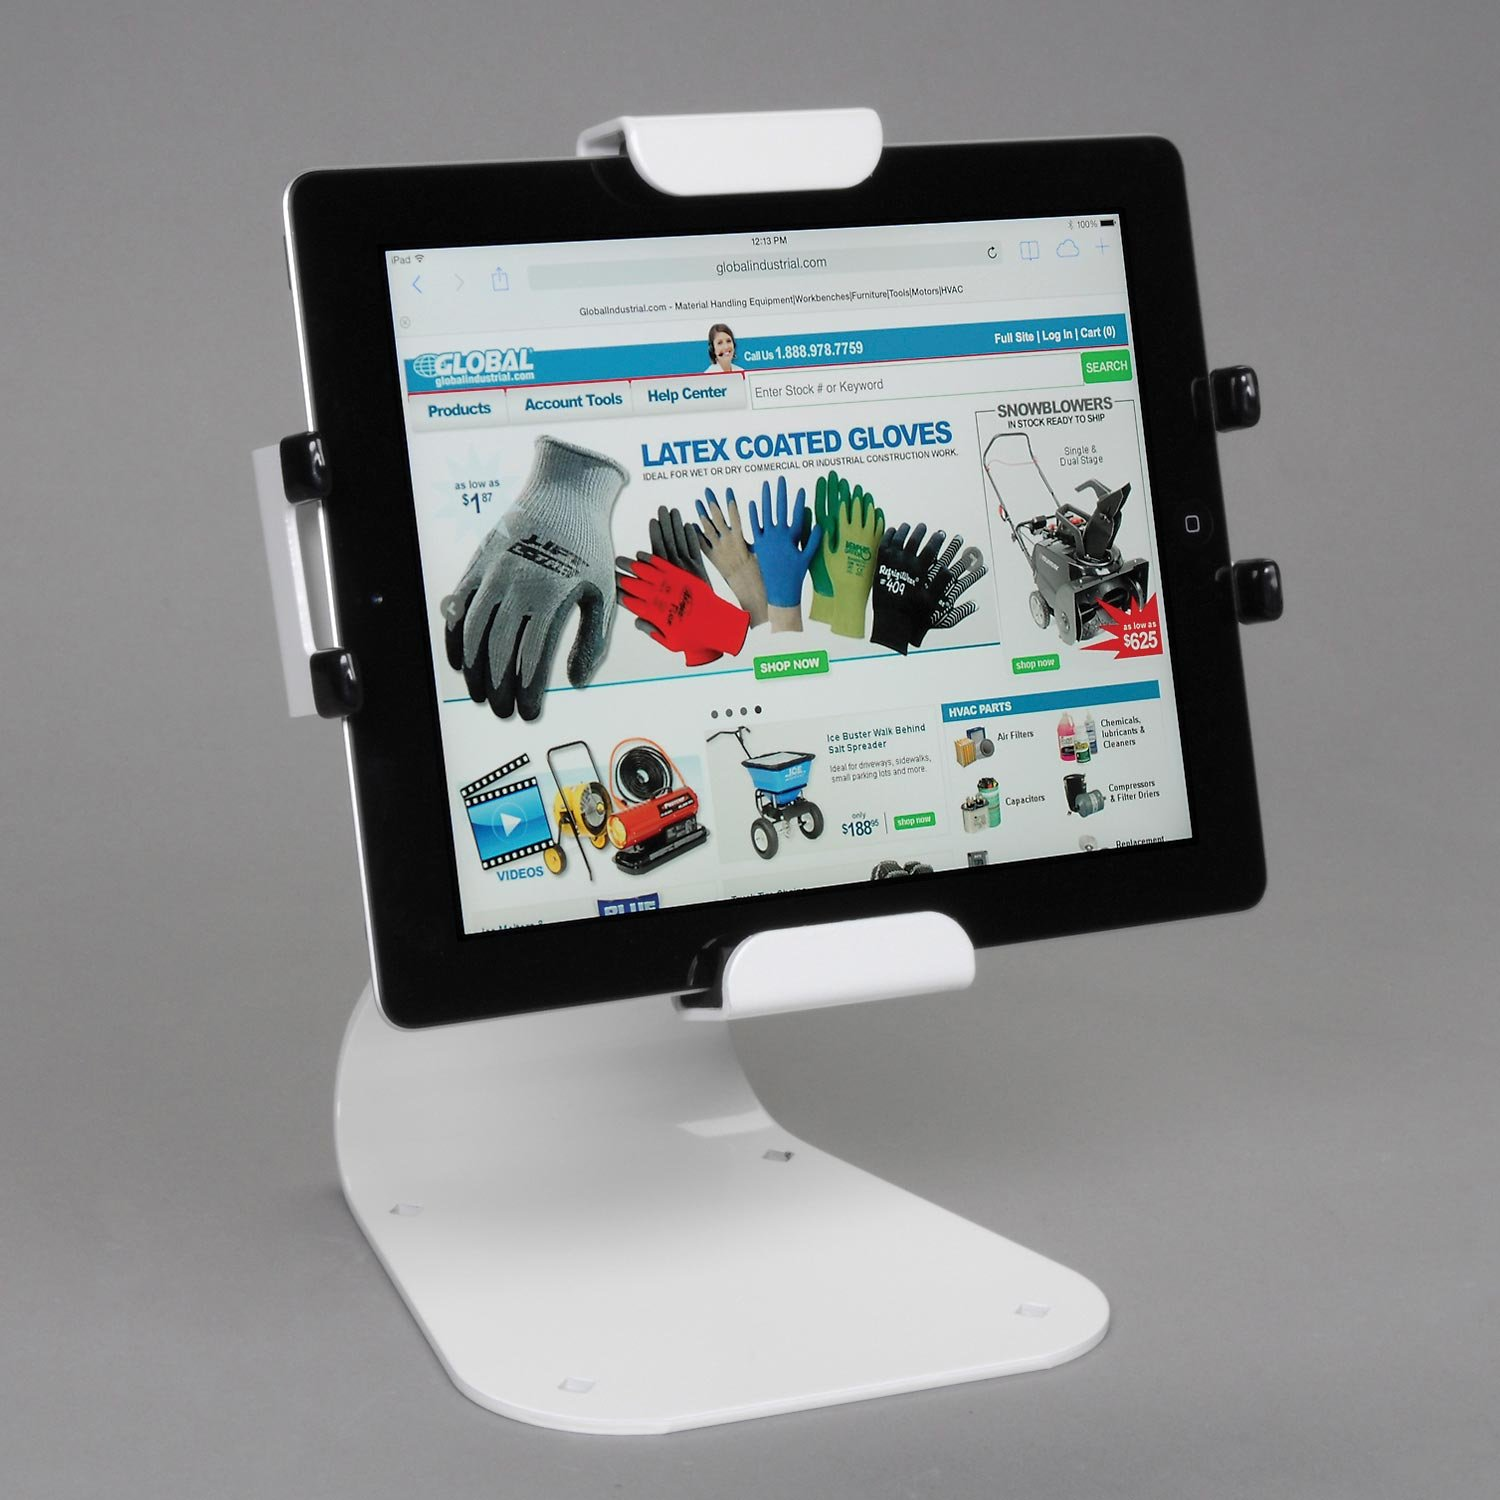 Universal Desktop Tablet Mount With Theft Resistant Hardware, White